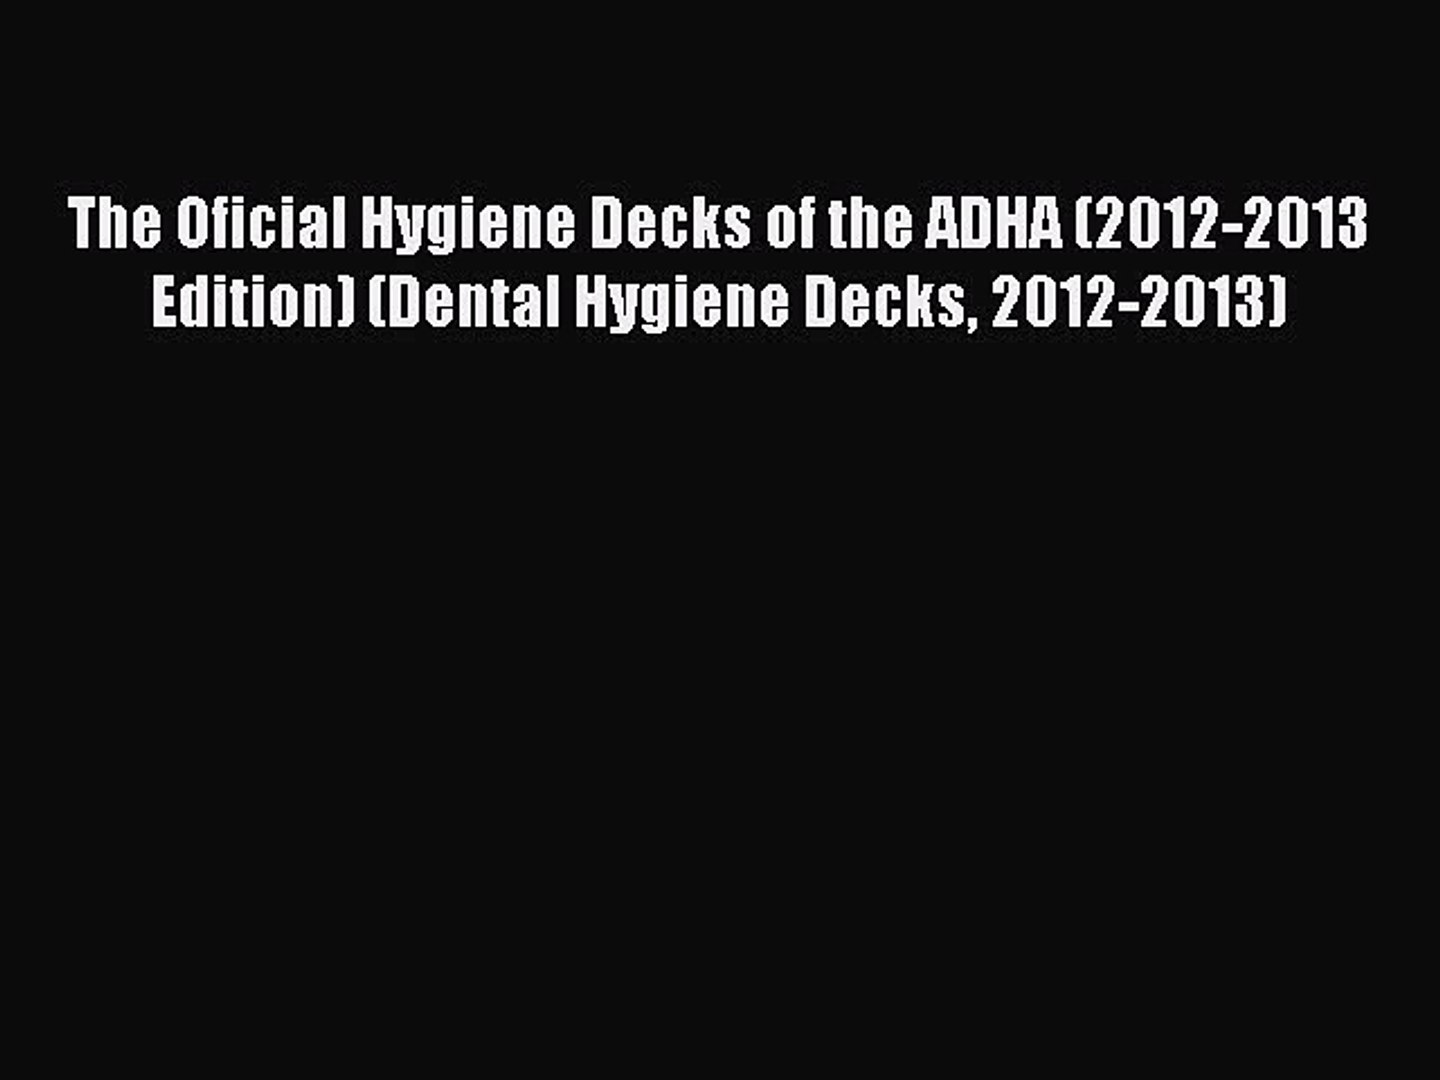 Read Book The Oficial Hygiene Decks of the ADHA (2012-2013 Edition) (Dental Hygiene Decks 2012-2013)